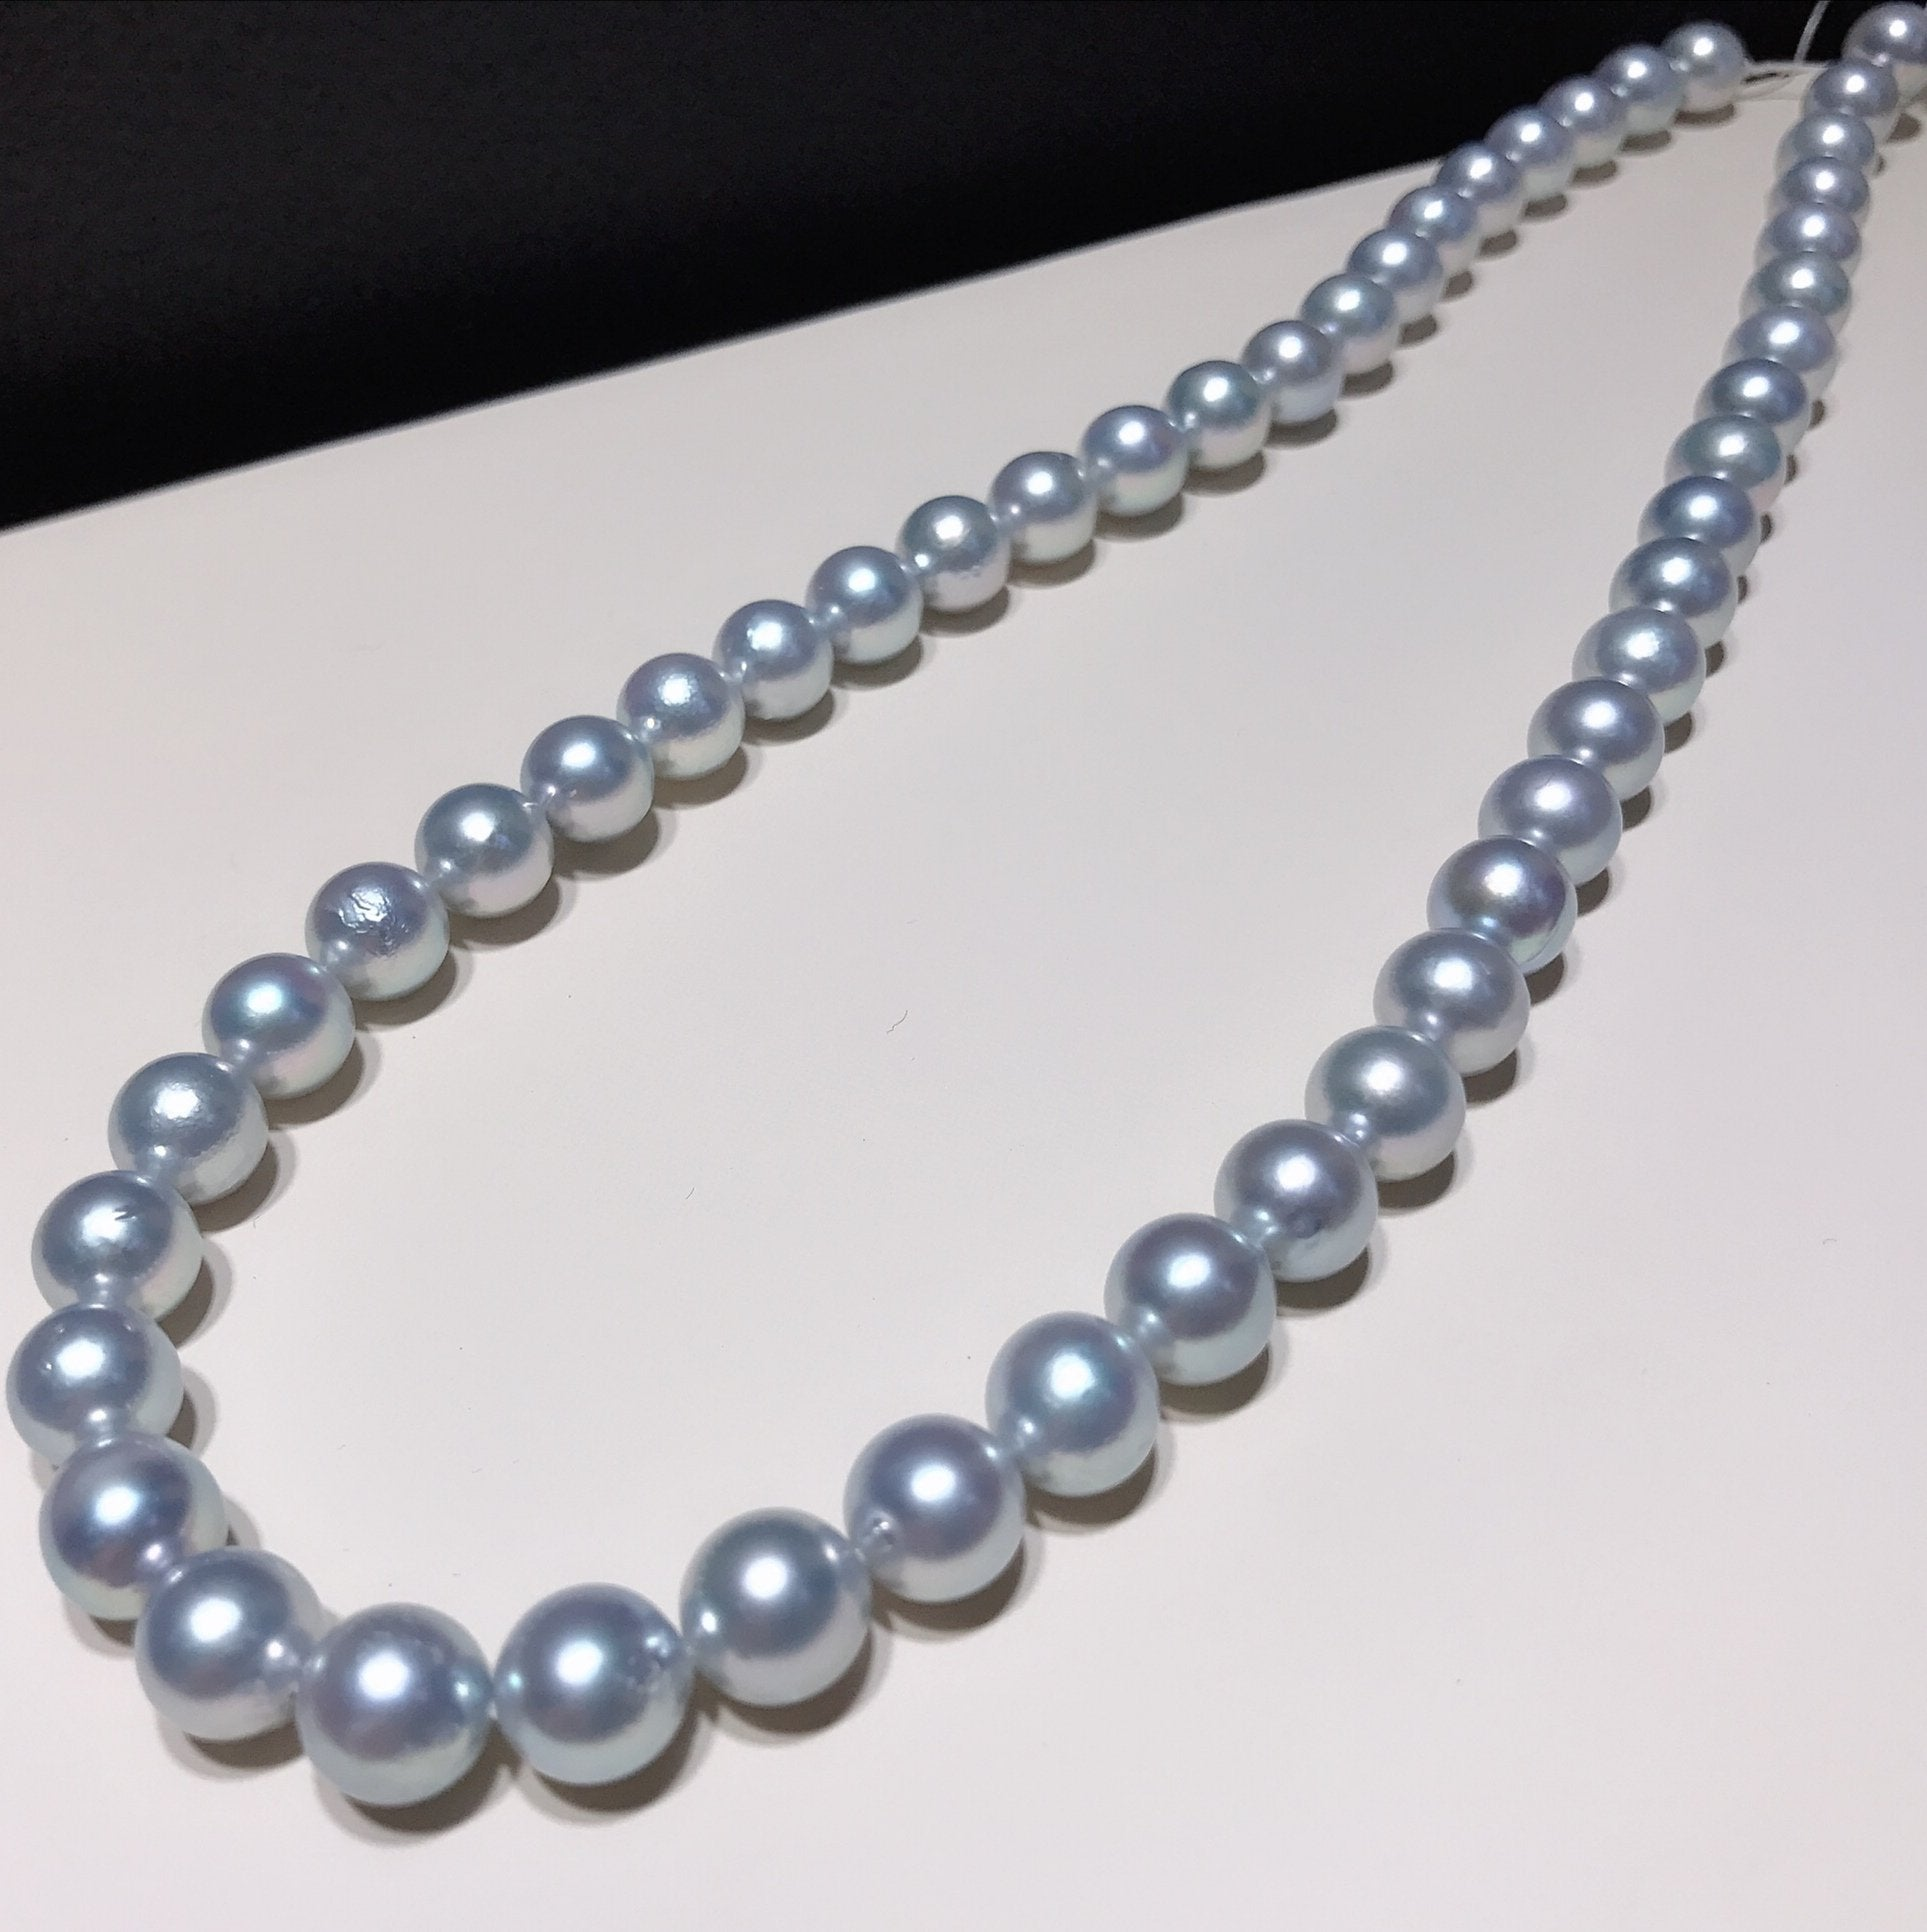 "8.5-9.0 mm Silver Grey Akoya Pearl Necklace 16"" for Woman - takaramonobr"